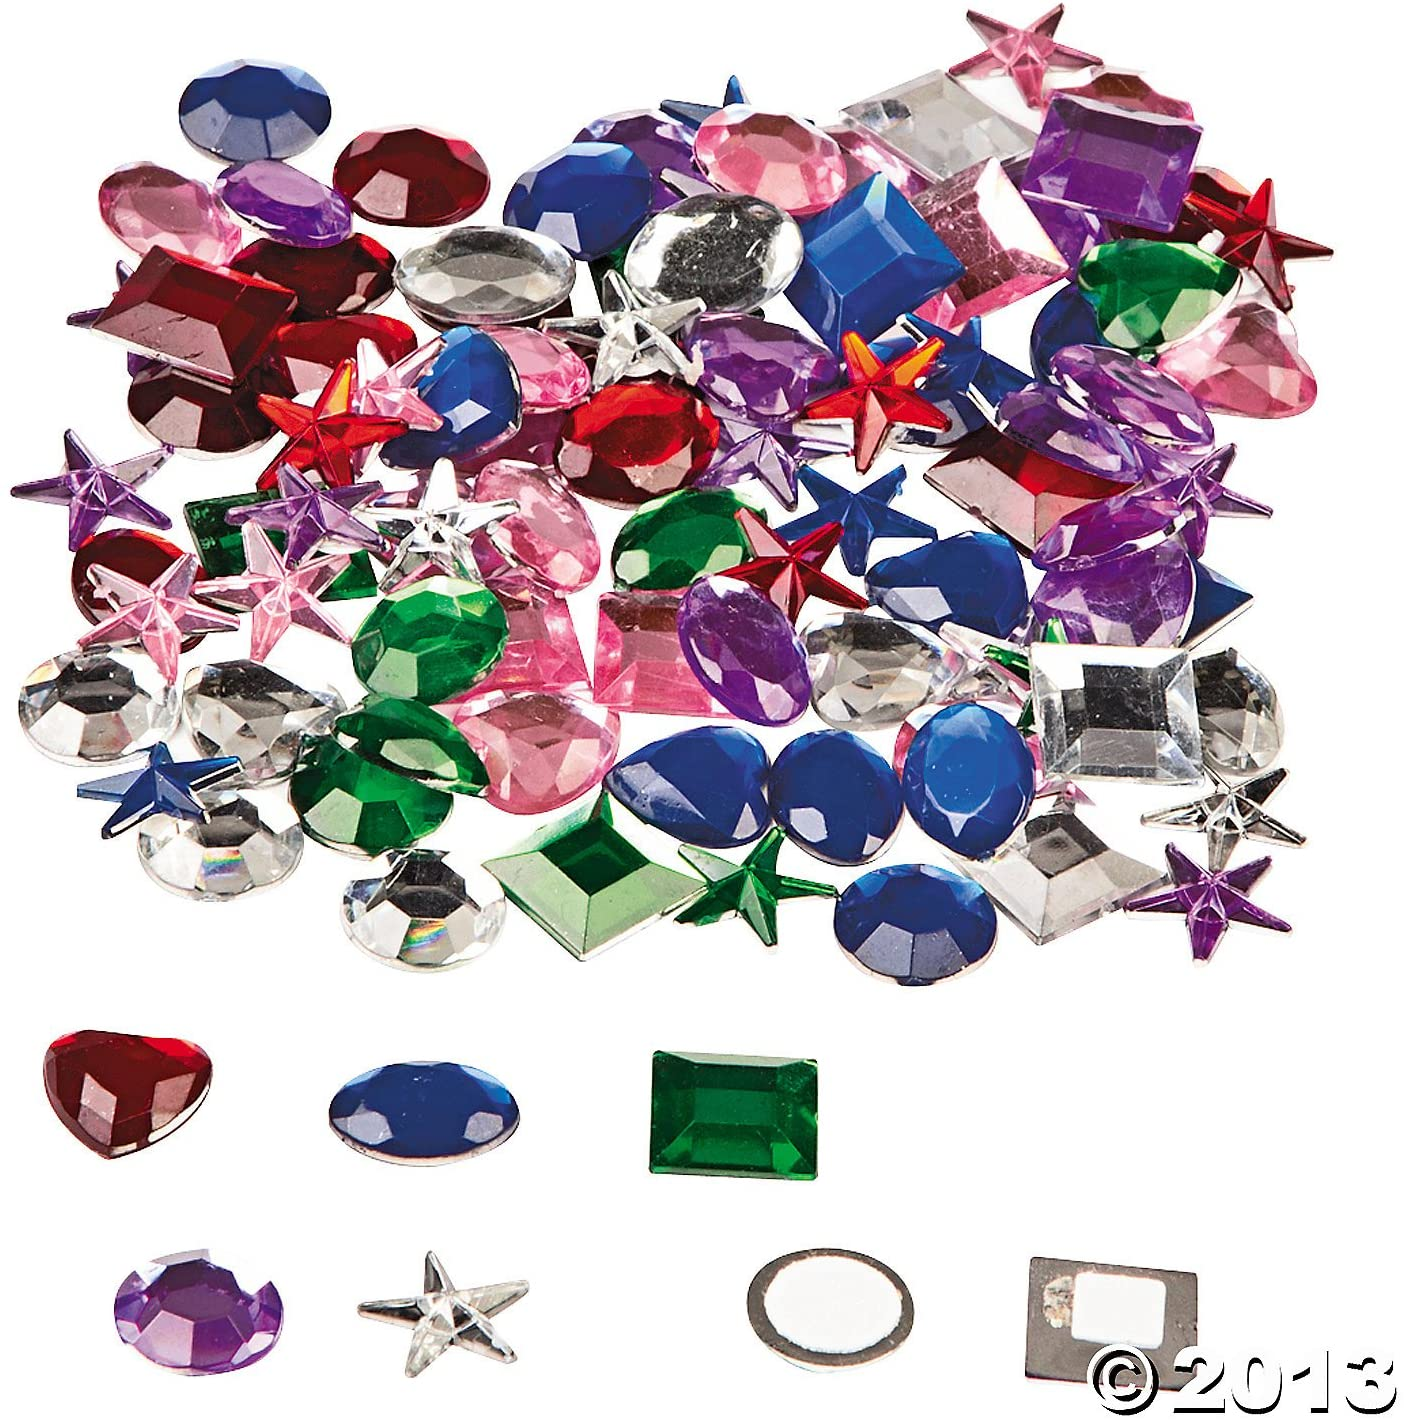 Acrylic Adhesive Jewels (Pack of 100)